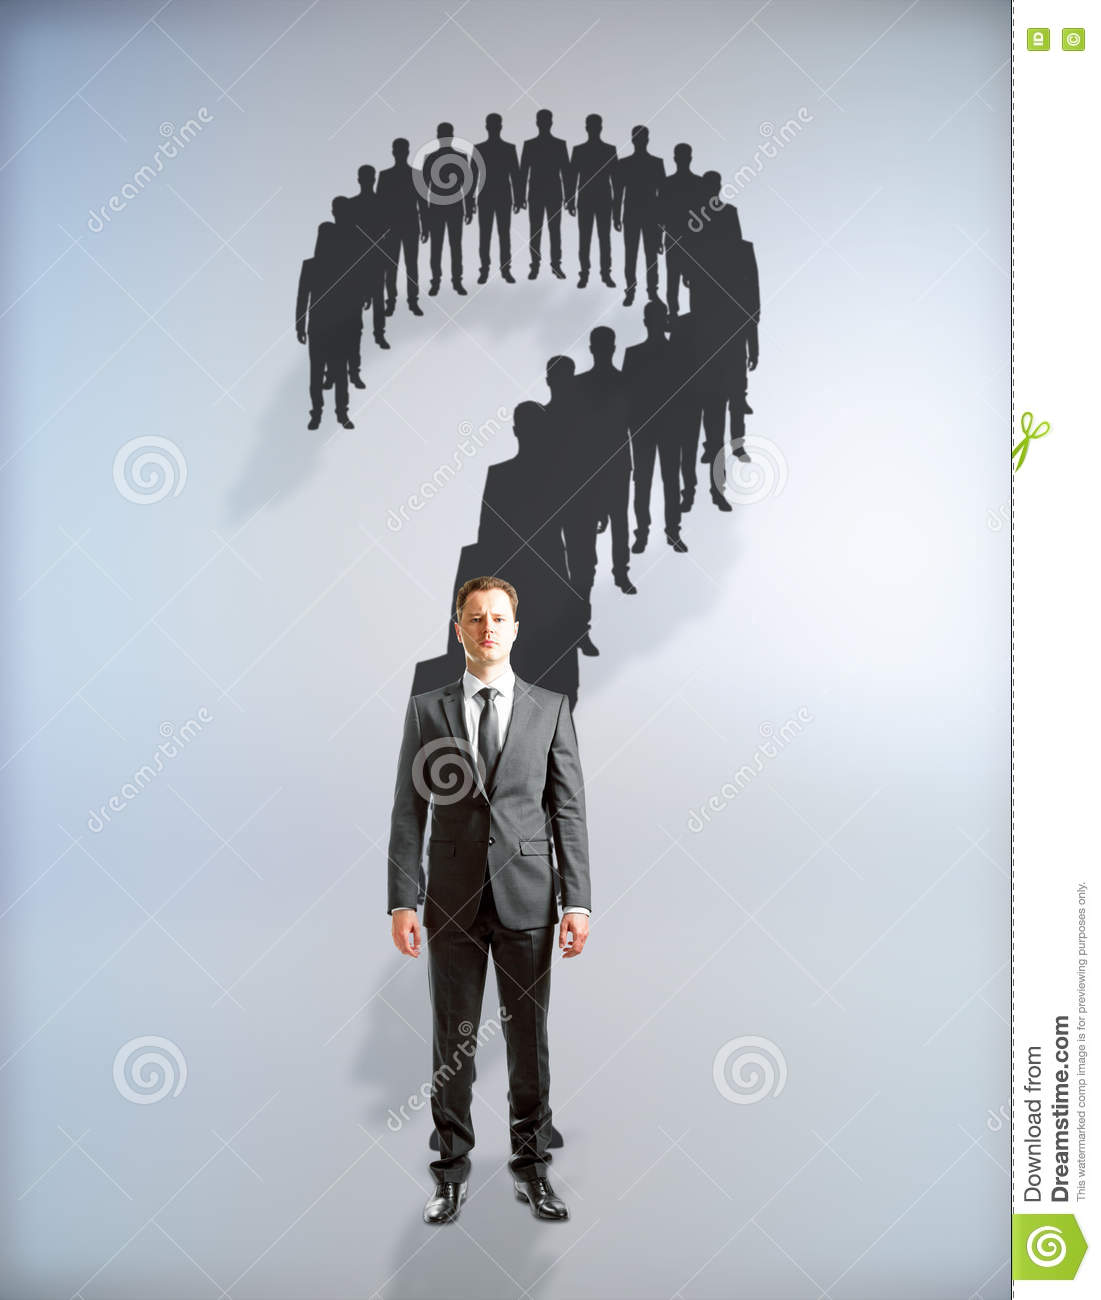 Thinking Question Mark Silhouette Stock Images - Download ...